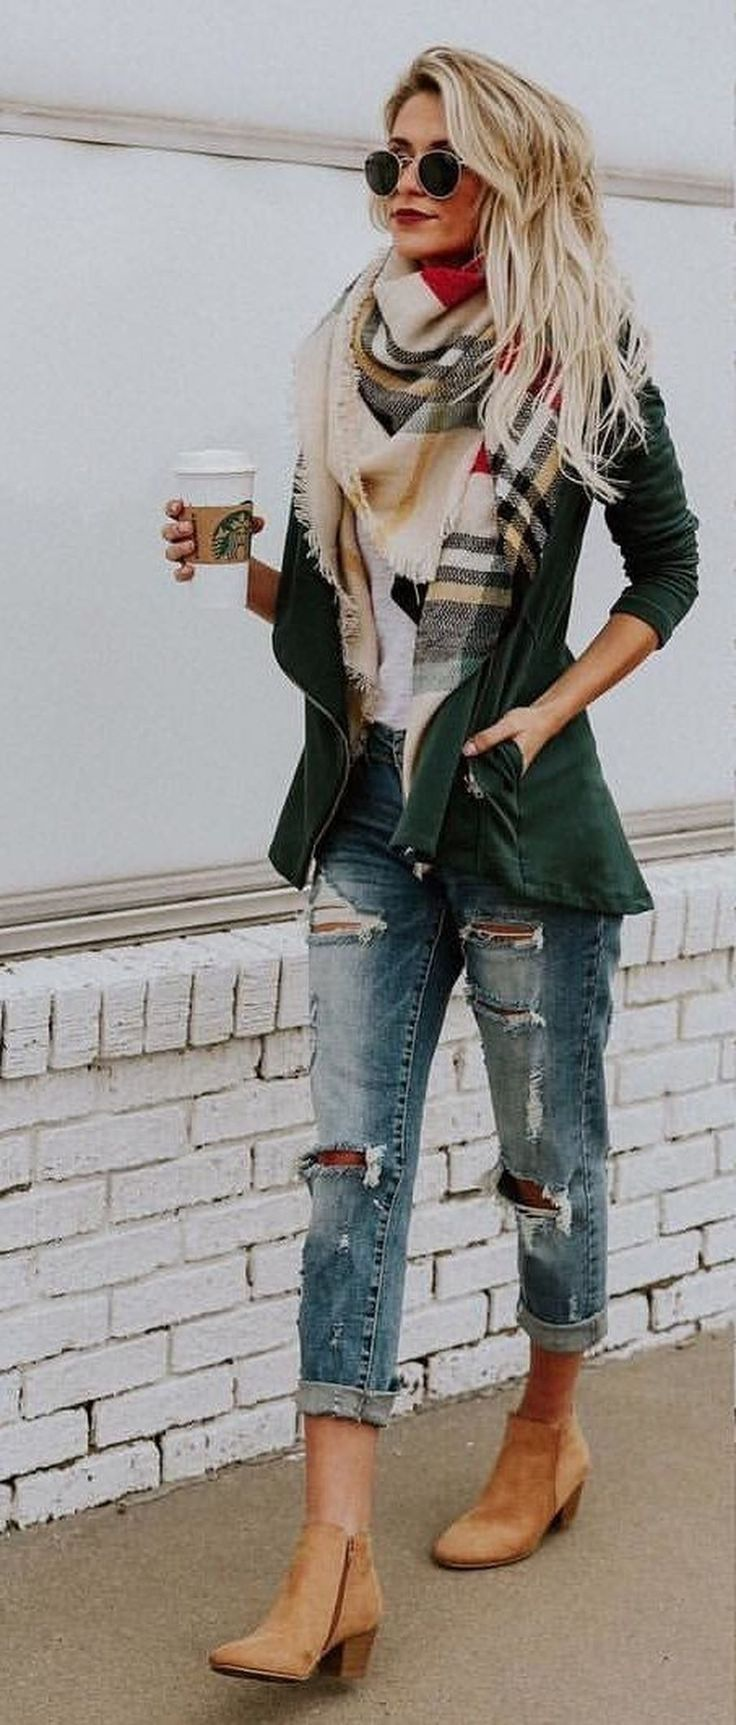 blanket scarf + military jacket + jeans  #winterfashion #winterwear #womenswear #womensfashion #blanketscarf #ootd #style #fashion